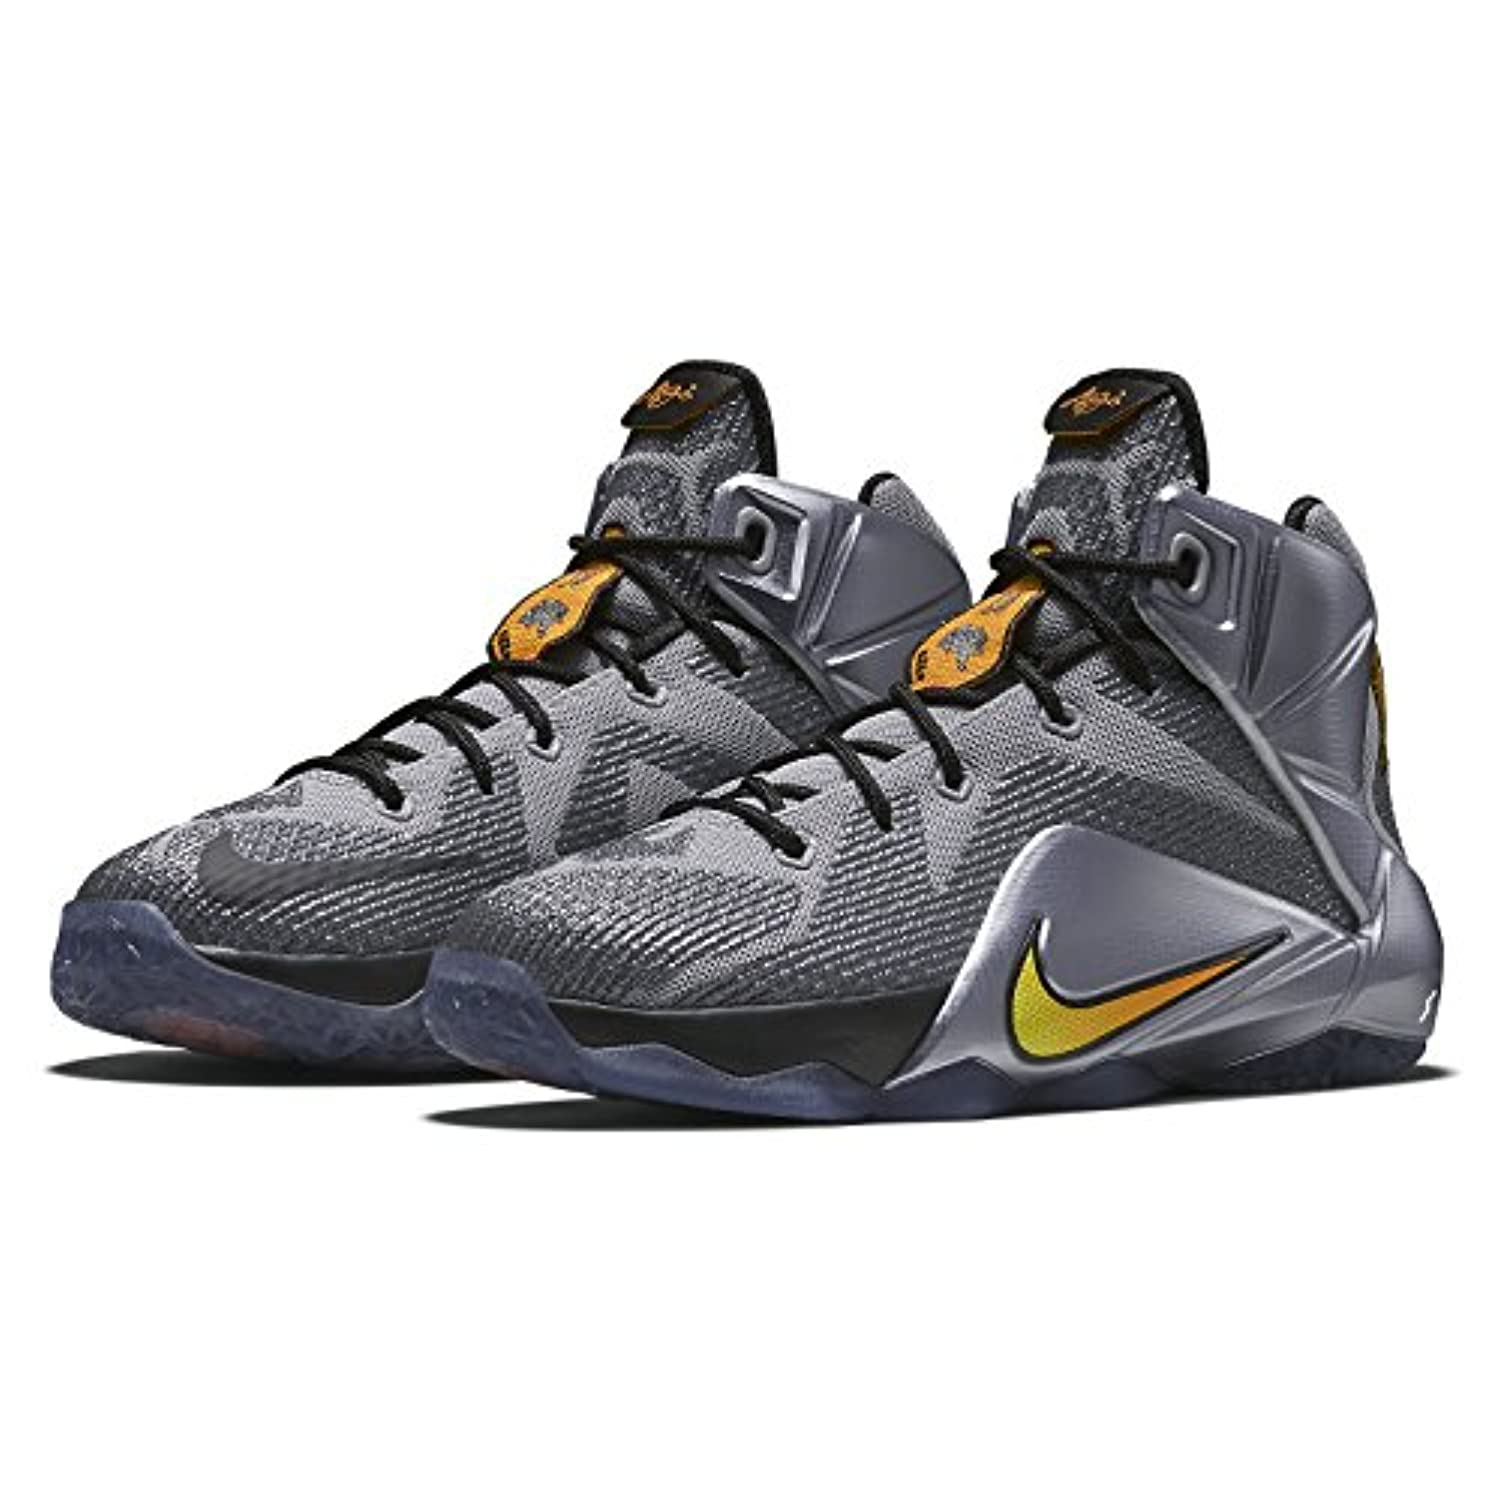 1a36323344f ... top quality nike lebron xii gs 12 instinct youth boys girls basketball  shoes 685181 080 5y